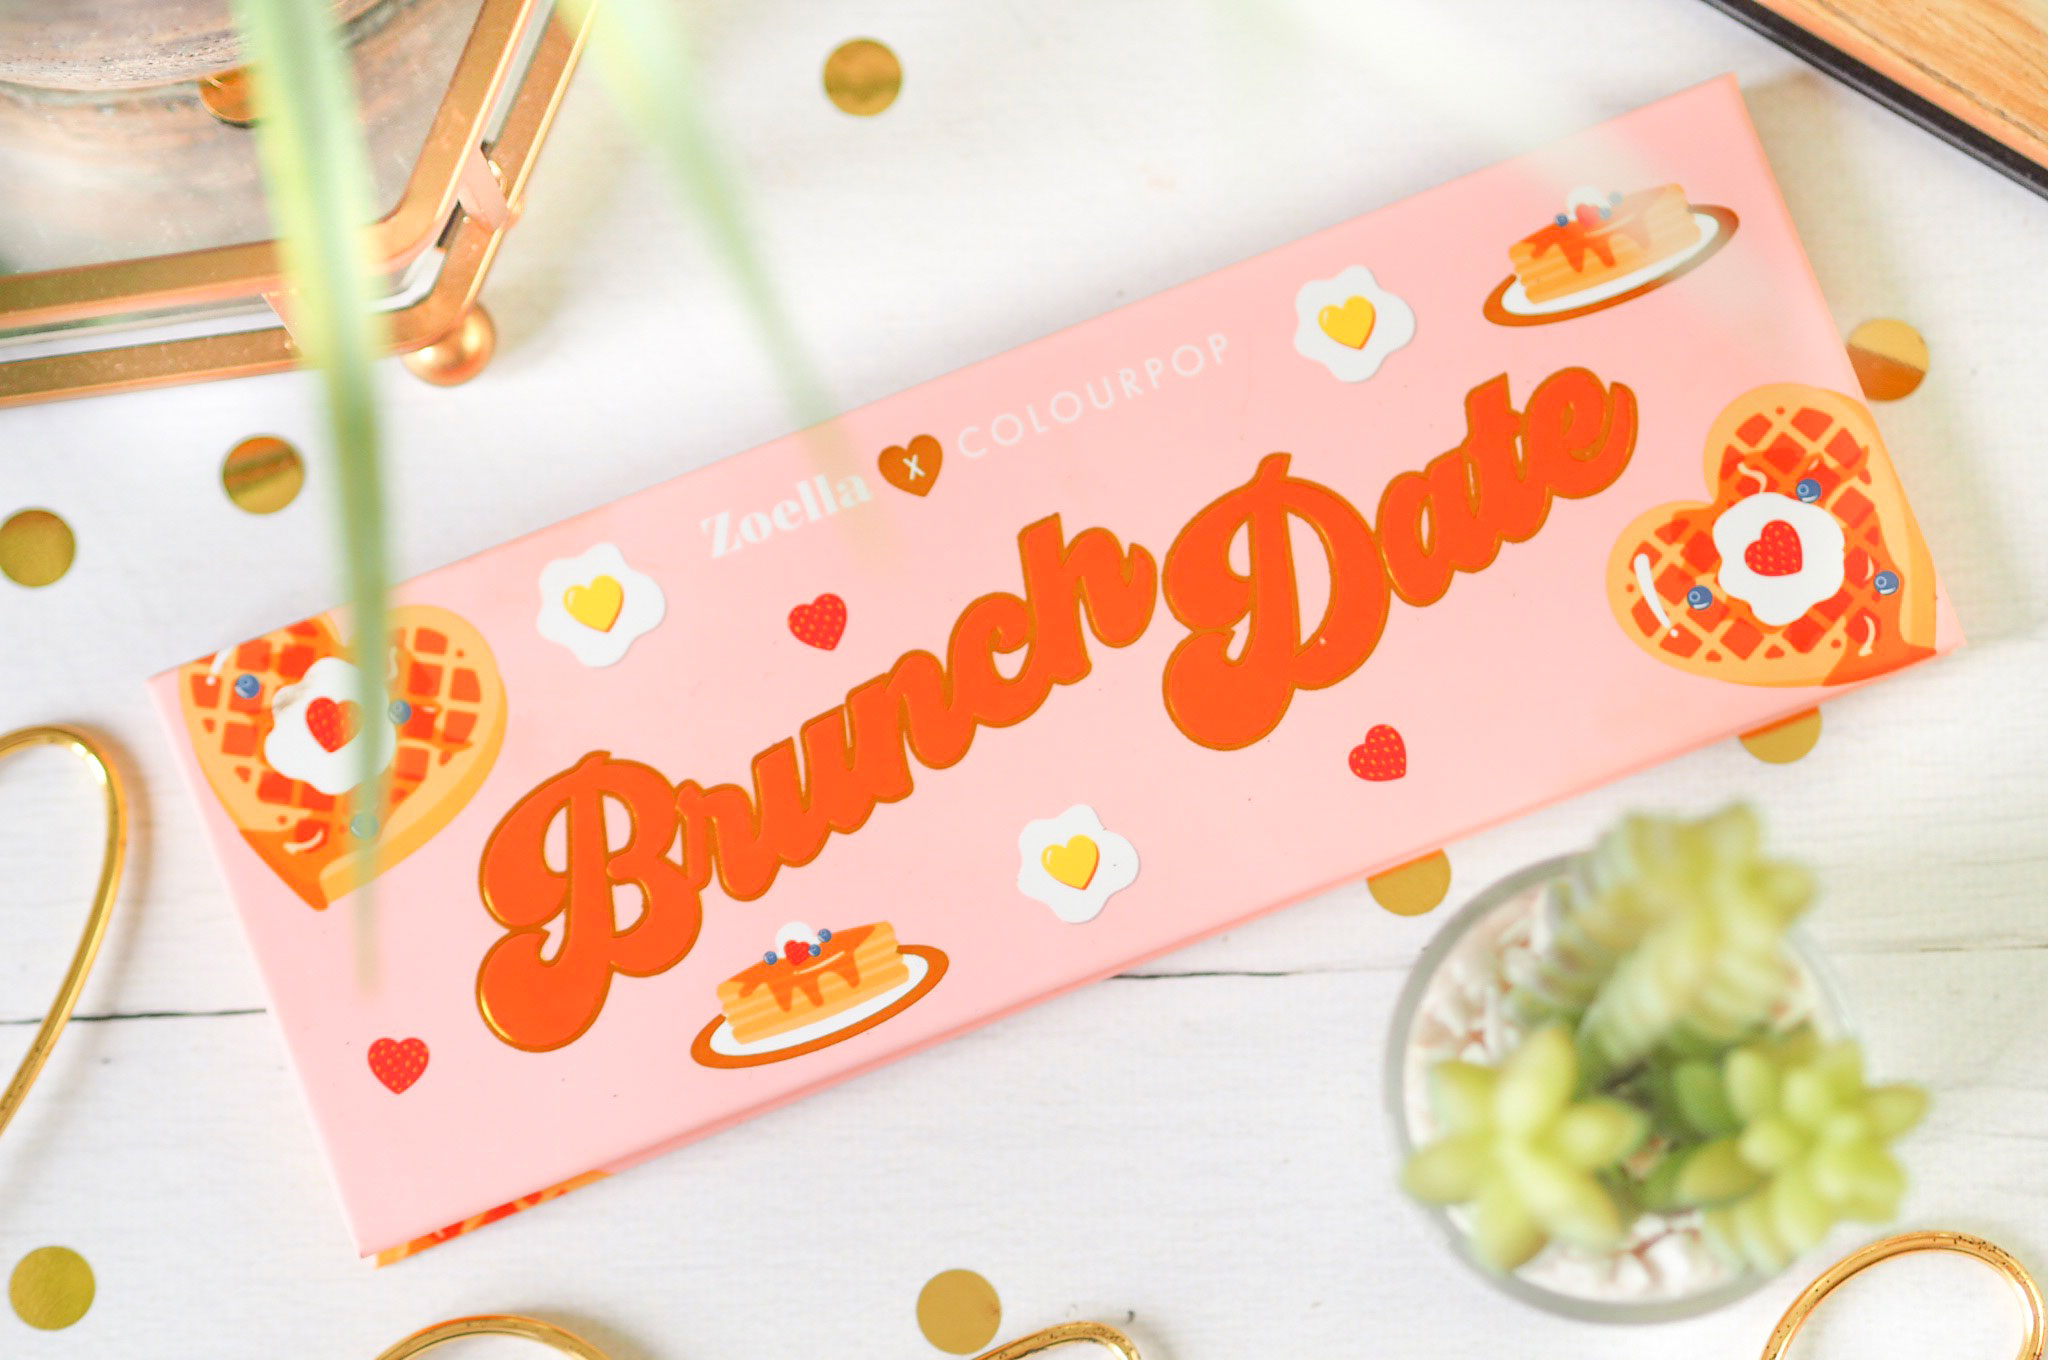 Zoella x Colourpop Brunch Date Eyeshadow Palette